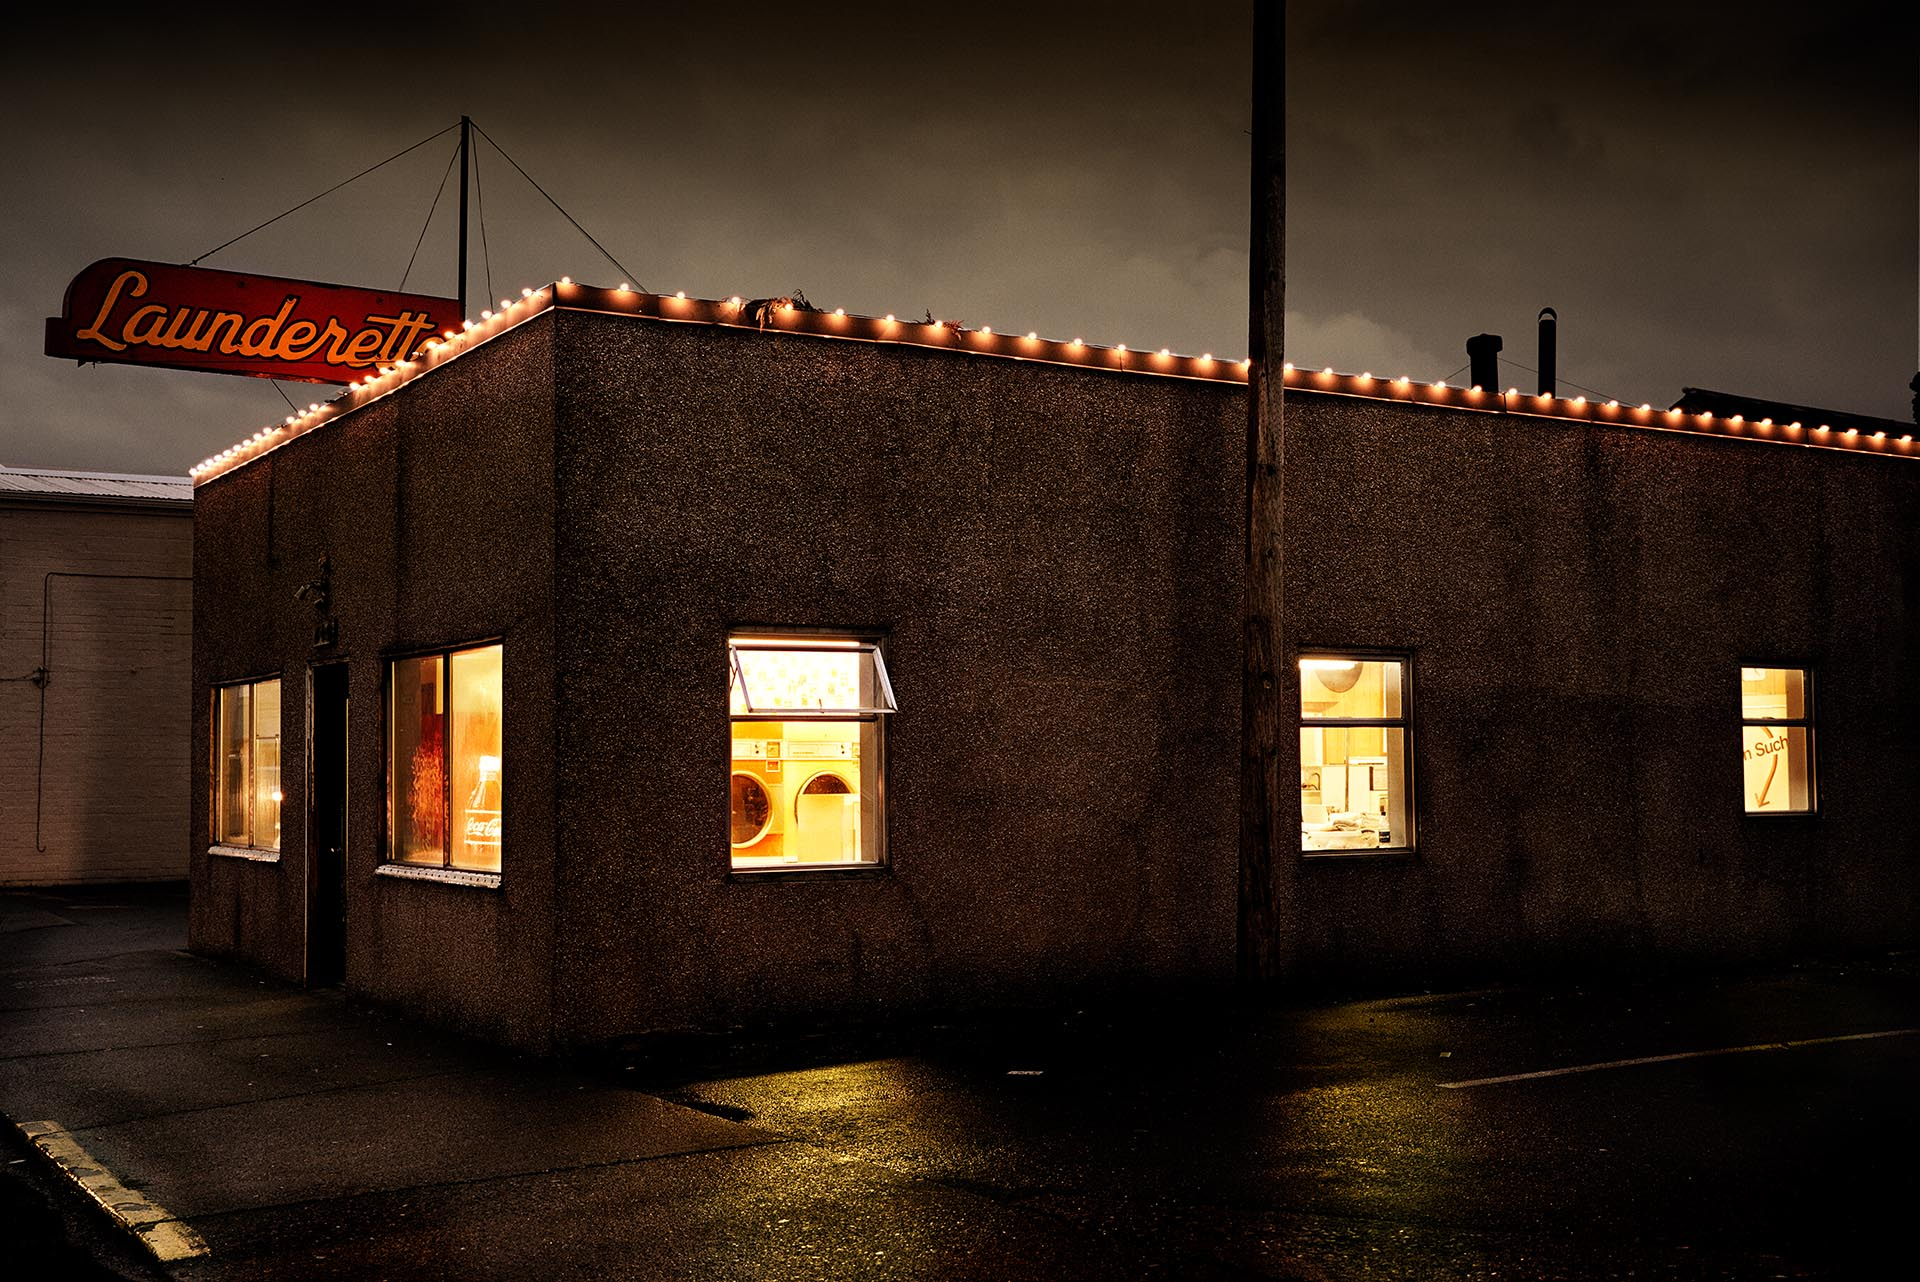 Launderette - Tacoma, Washington